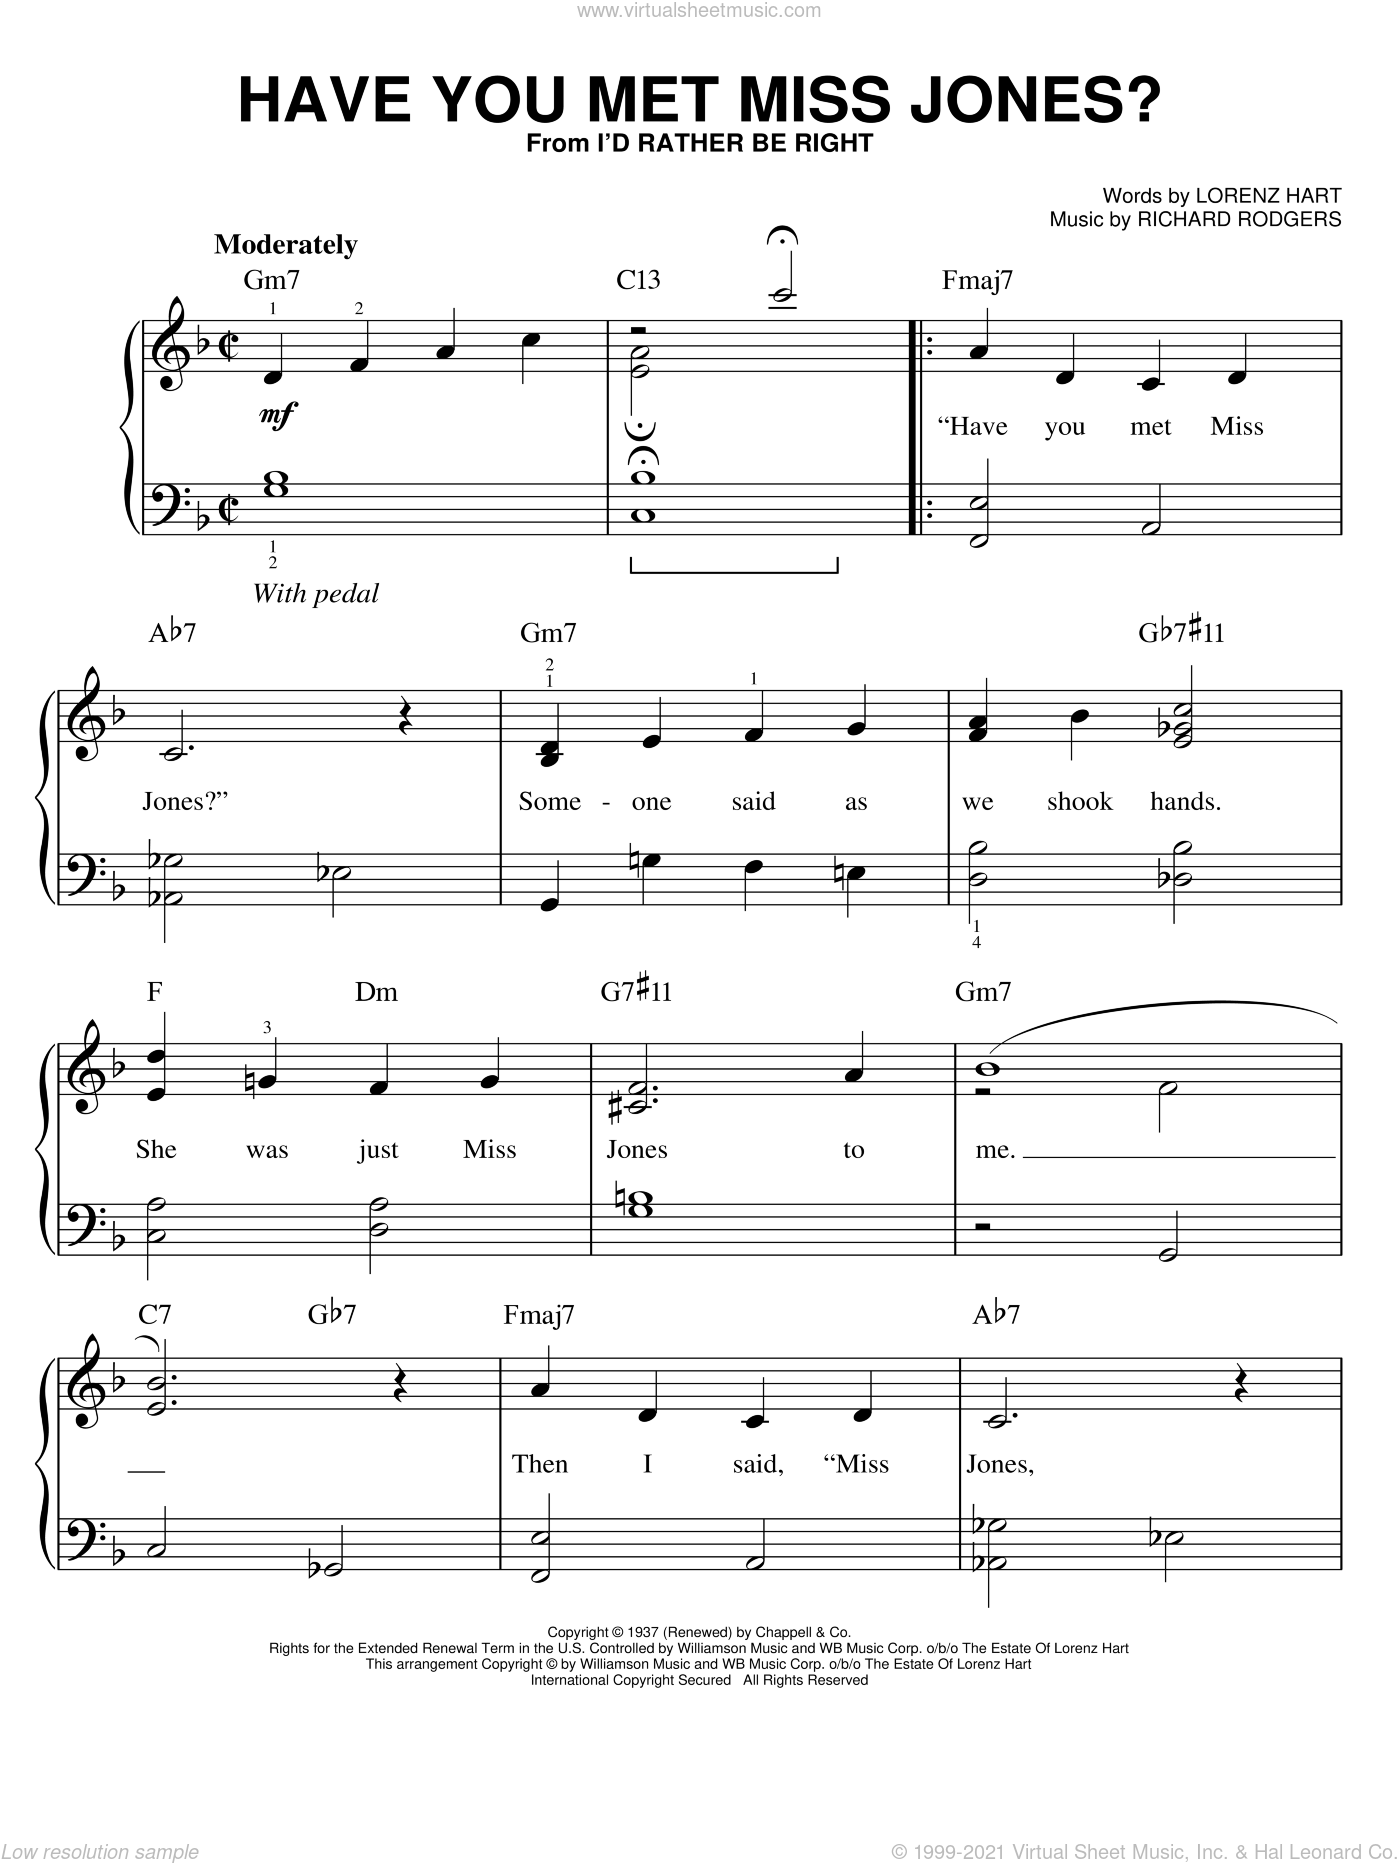 Have You Met Miss Jones?, (easy) sheet music for piano solo by Rodgers & Hart, Lorenz Hart and Richard Rodgers, easy skill level